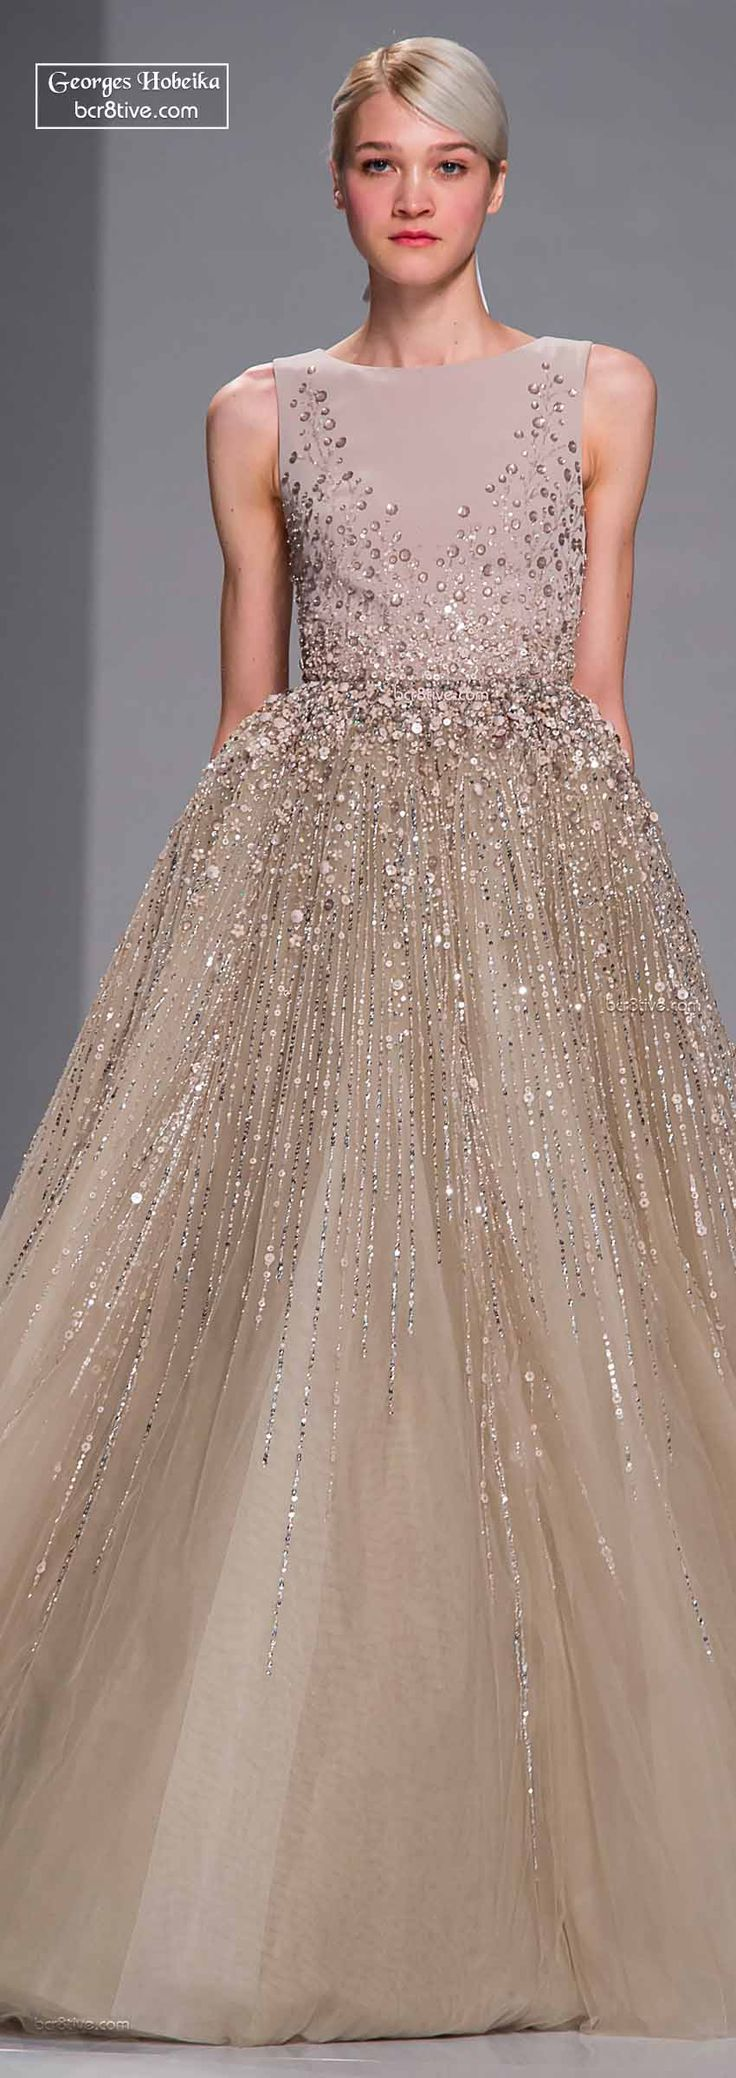 Georges Hobeika ~ Haute Couture Spring Taupe Sequin Chiffon Ball Gown w Crepe Bodice 2015